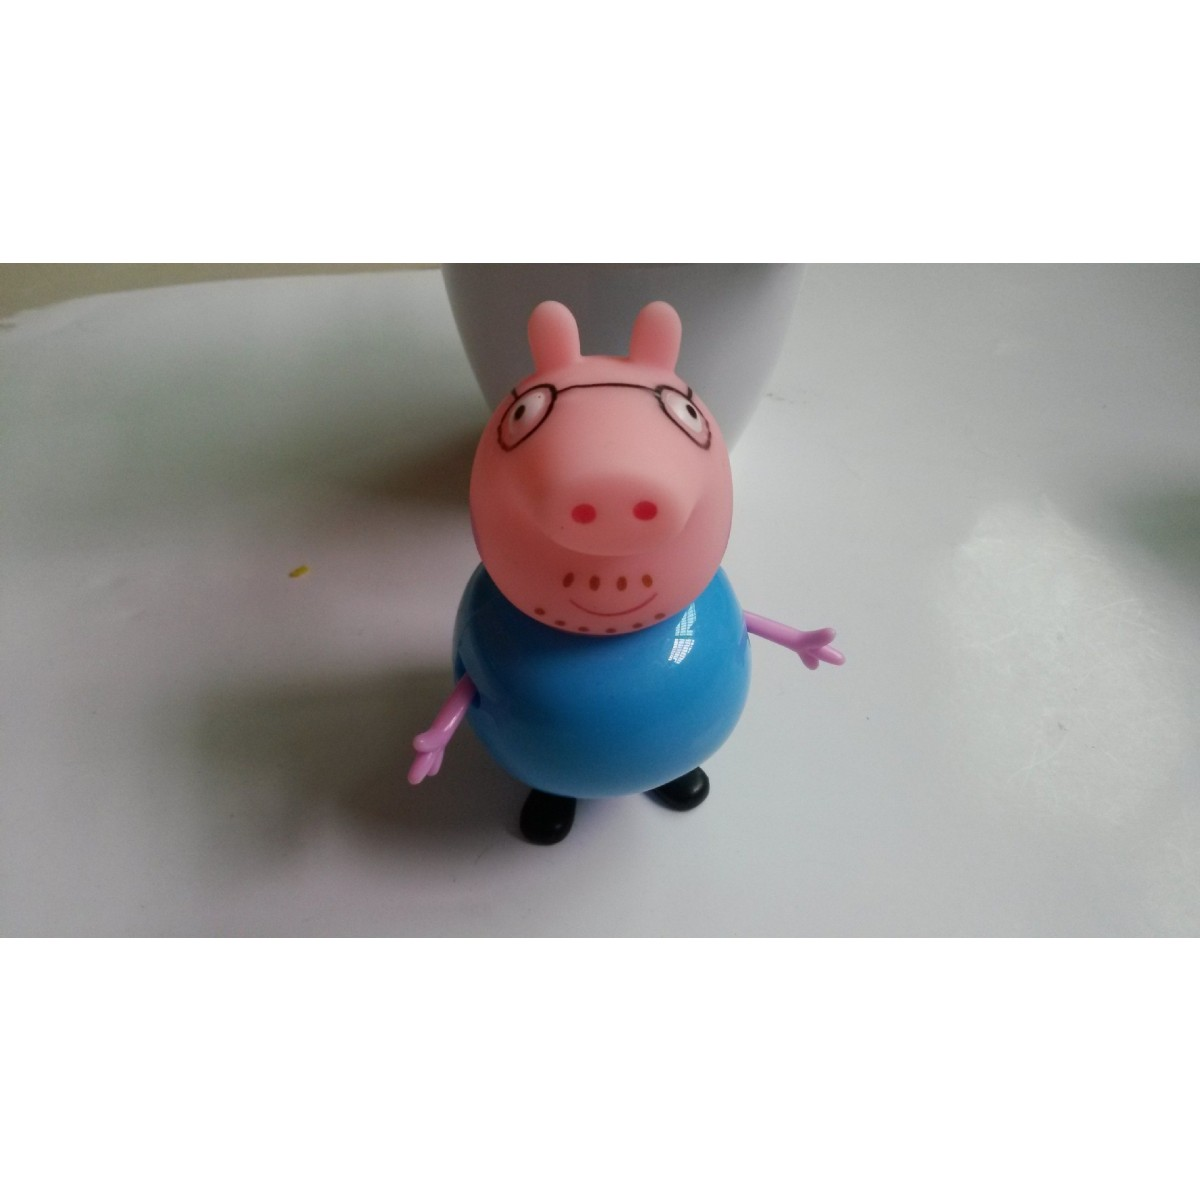 Best Peppa Pig Toys : Cheap peppa pig family figure toys action figures pcs lot